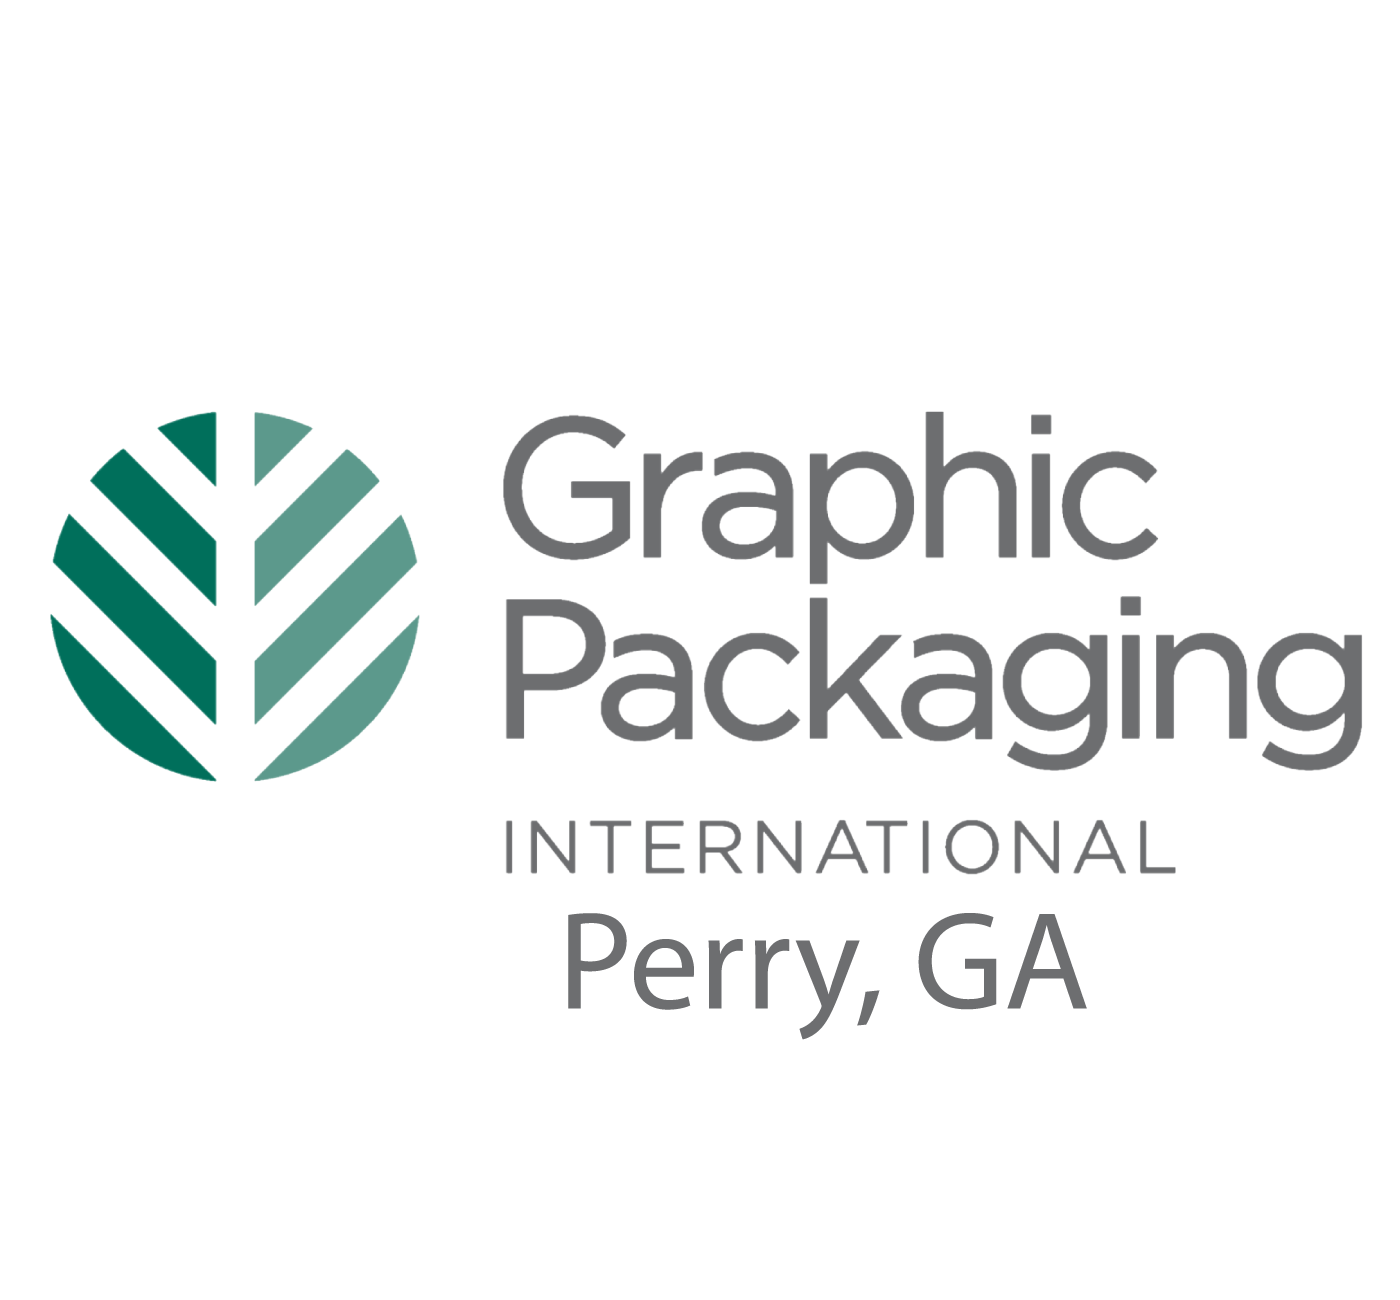 Graphic-Packaging-Perry